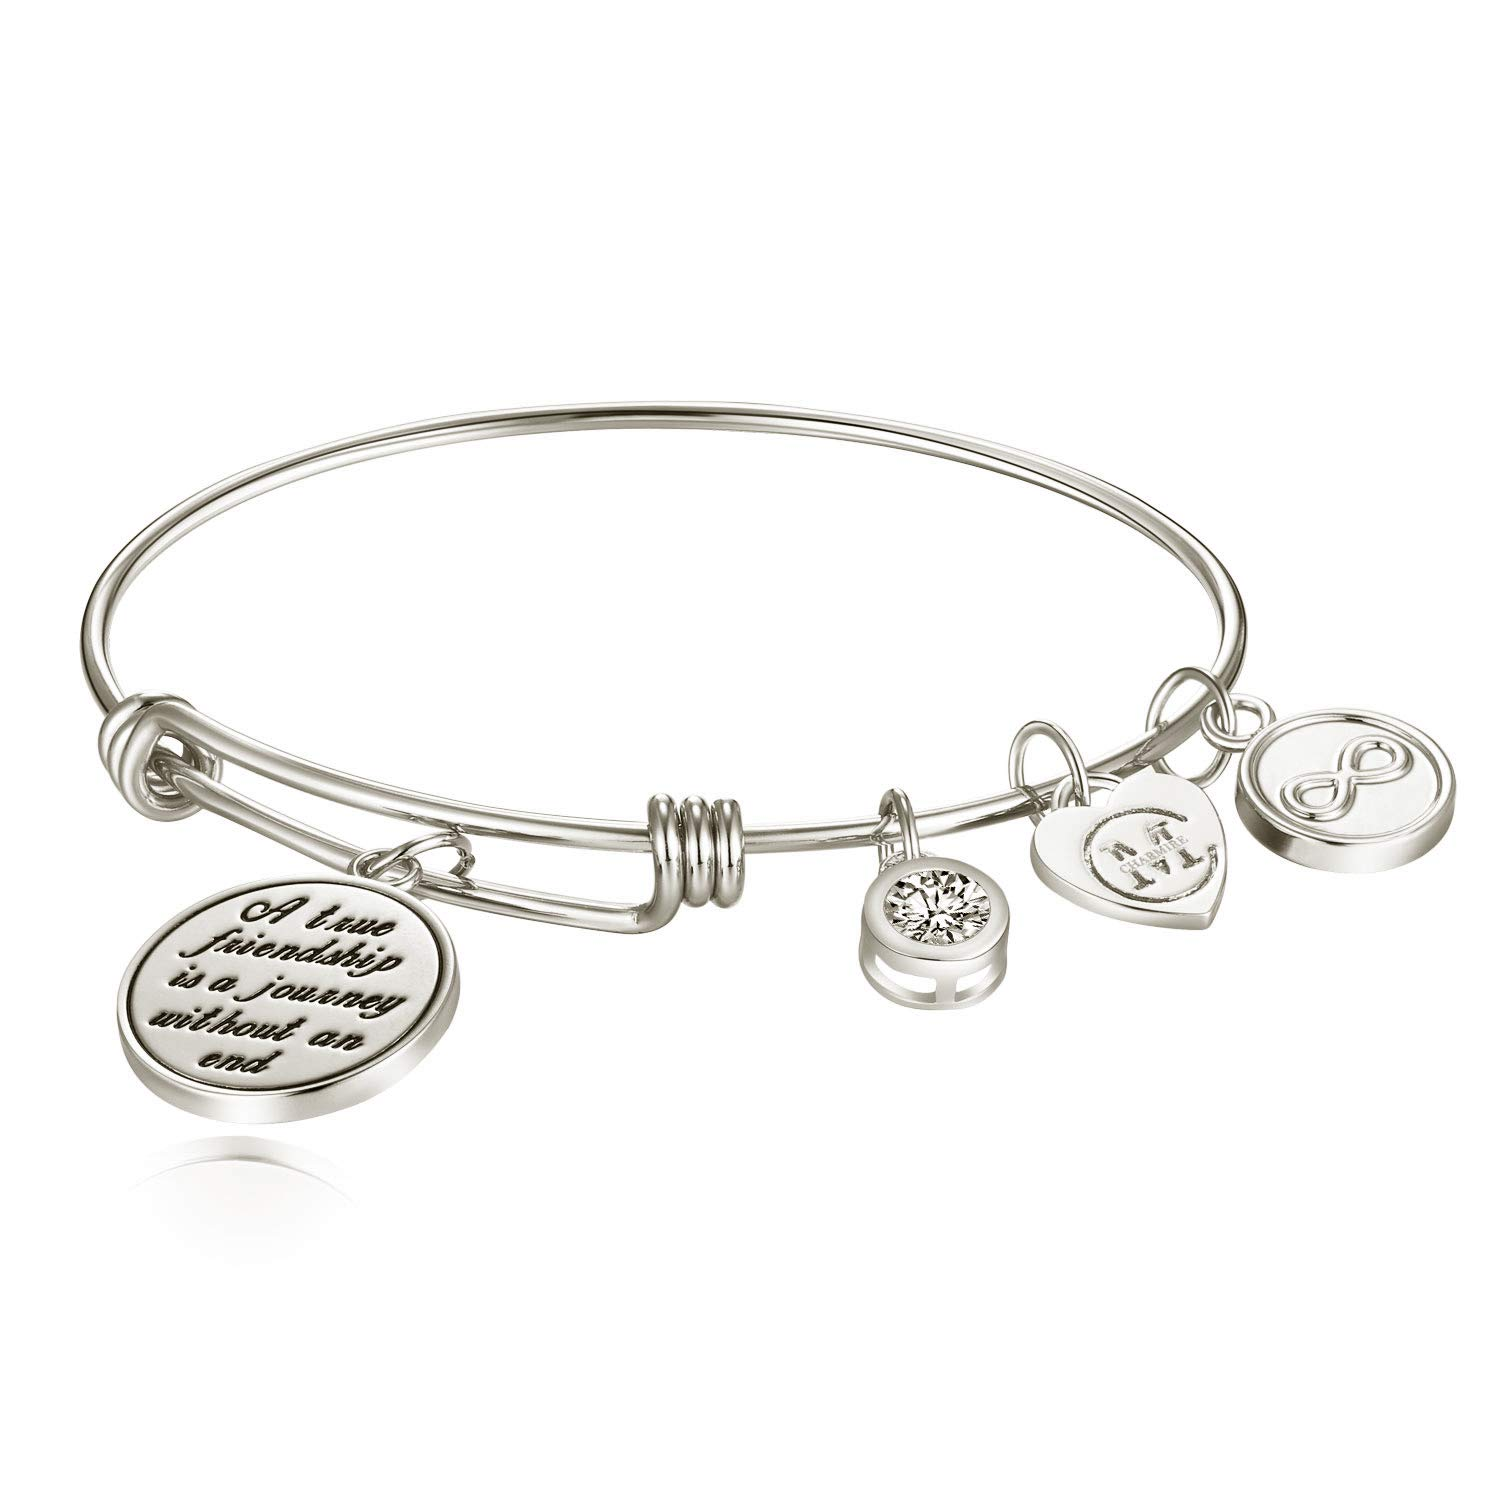 A True Friendship is a Journey Without an end Womens Charm Bangle Bracelet Jewelry Gifts by Charmire